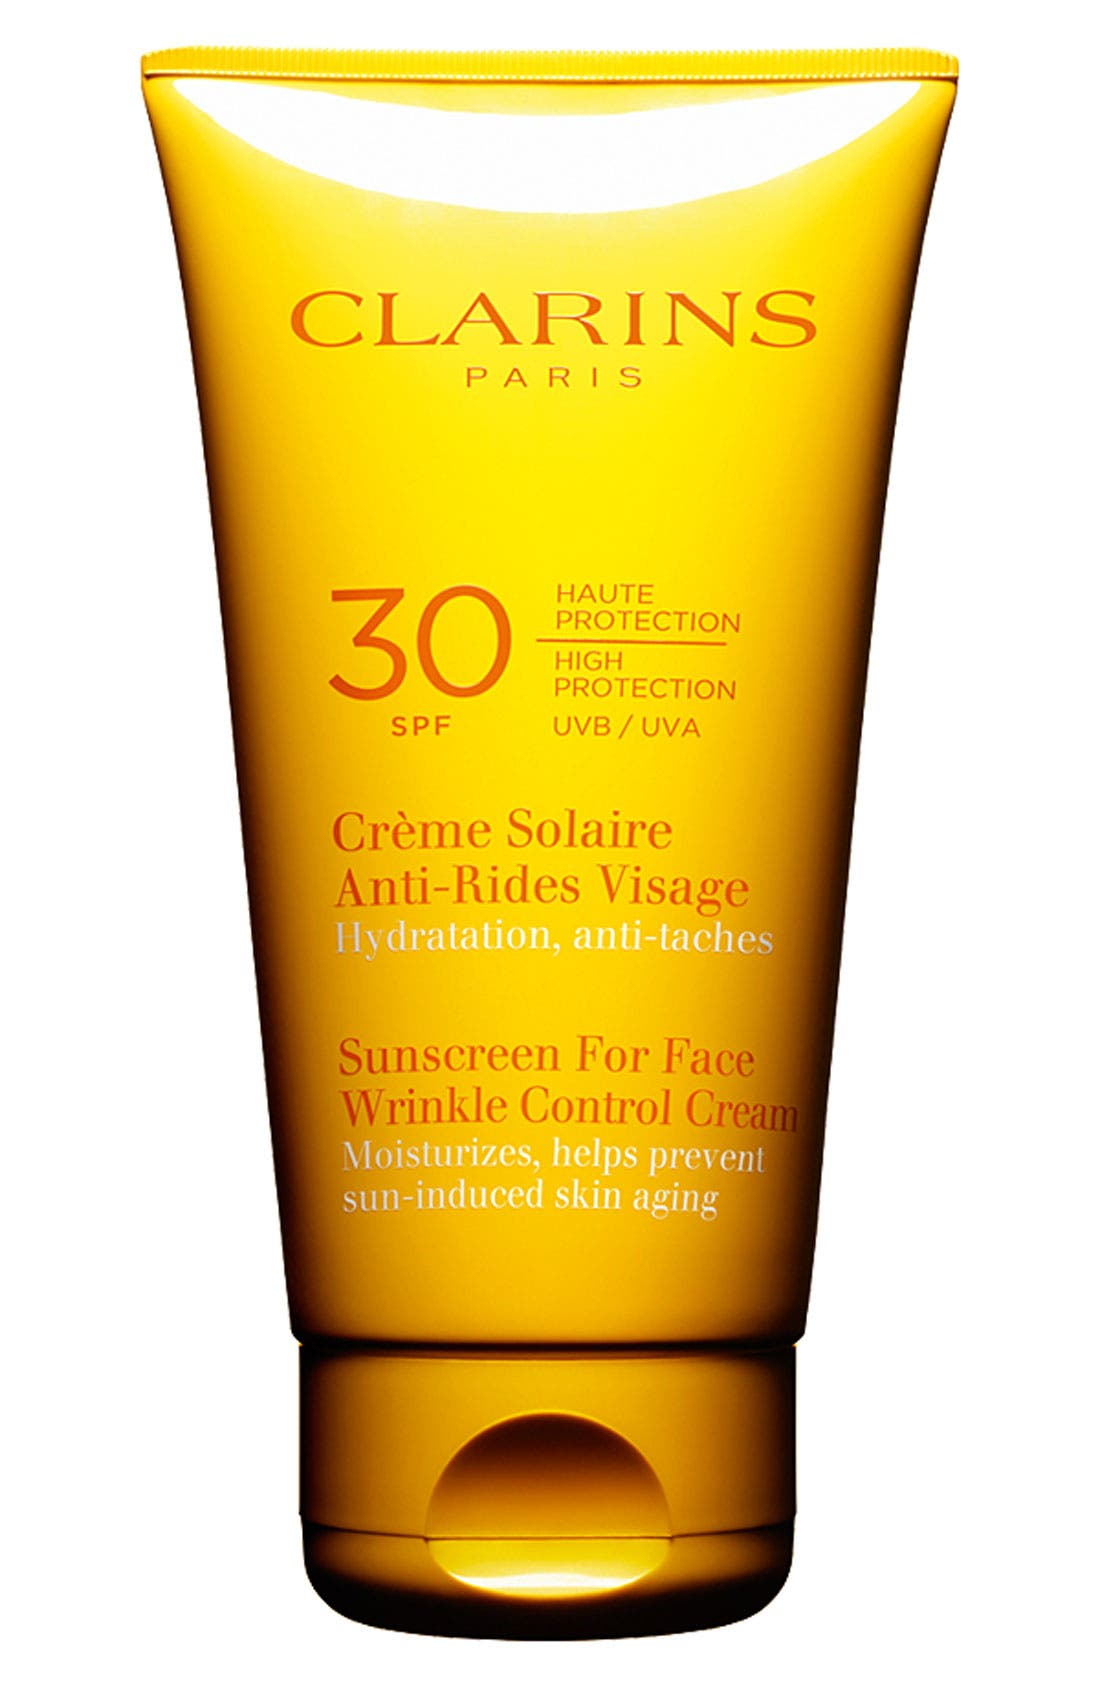 Clarins 'Sunscreen for Face' Wrinkle Control Cream SPF 30